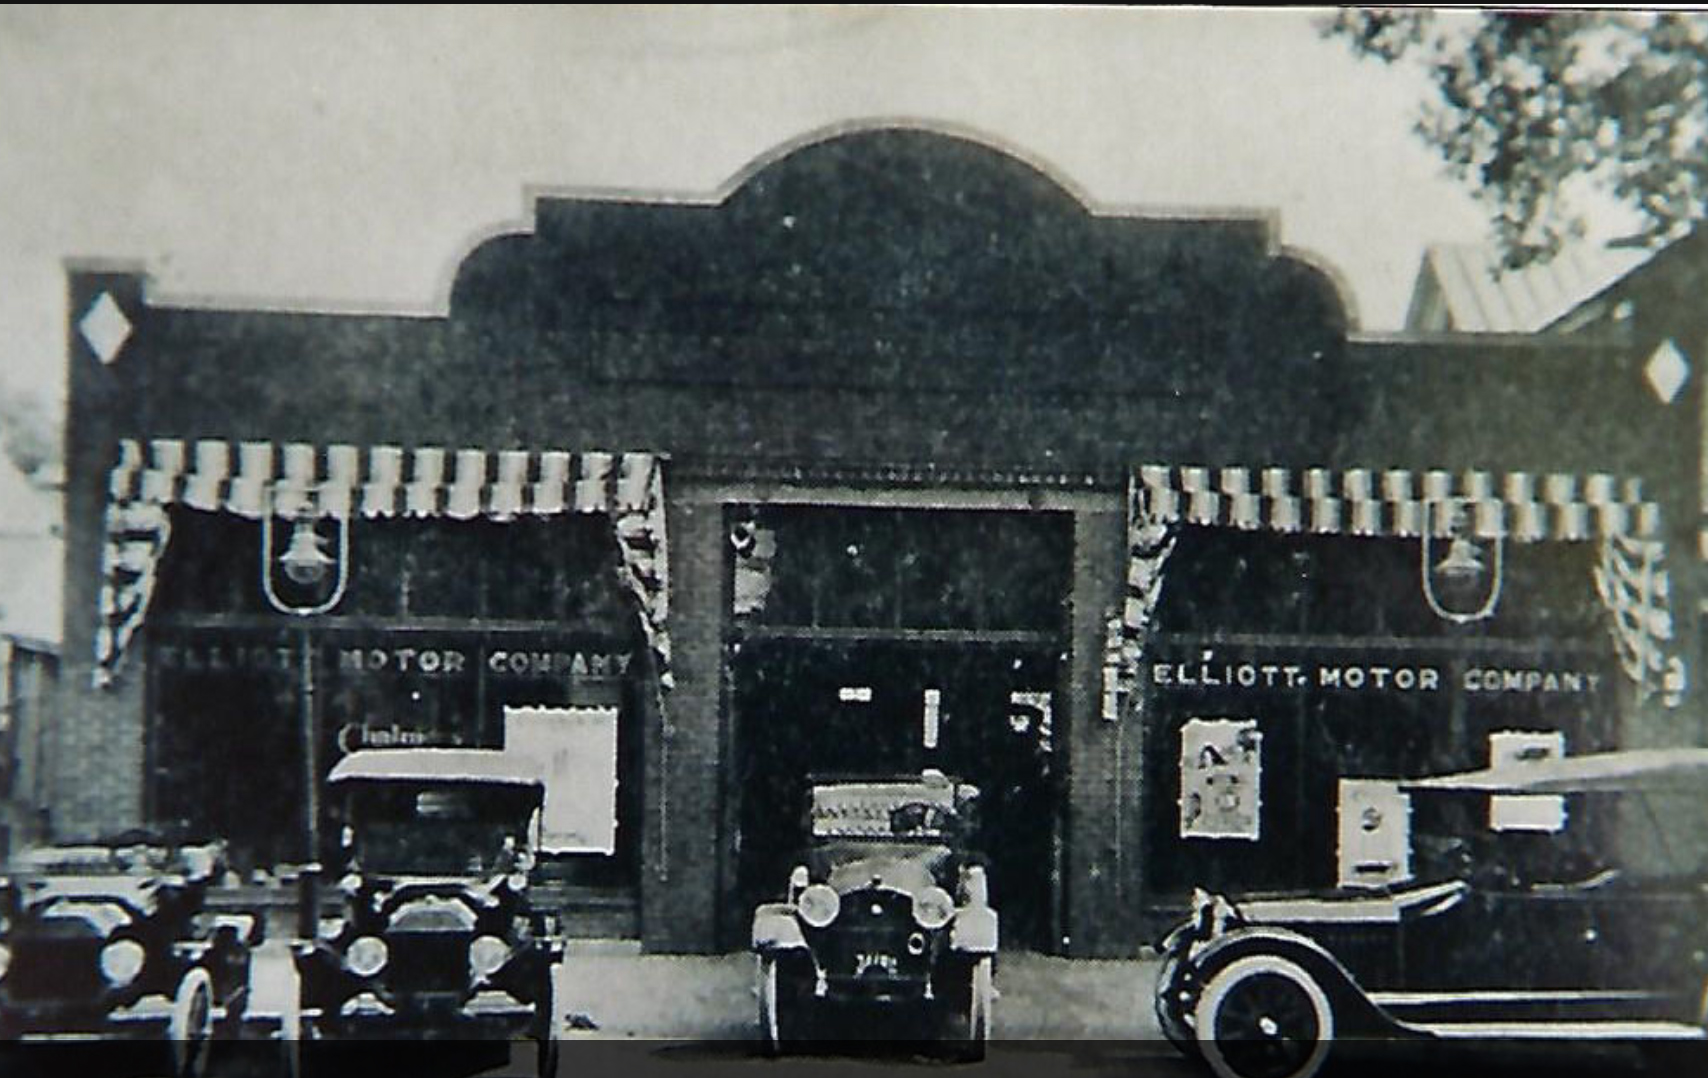 A century-old photograph of the building when it was a car dealership (courtesy of the Suffolk-Nansemond Historical Society, via The Virginian-Pilot). See FN for the original source.